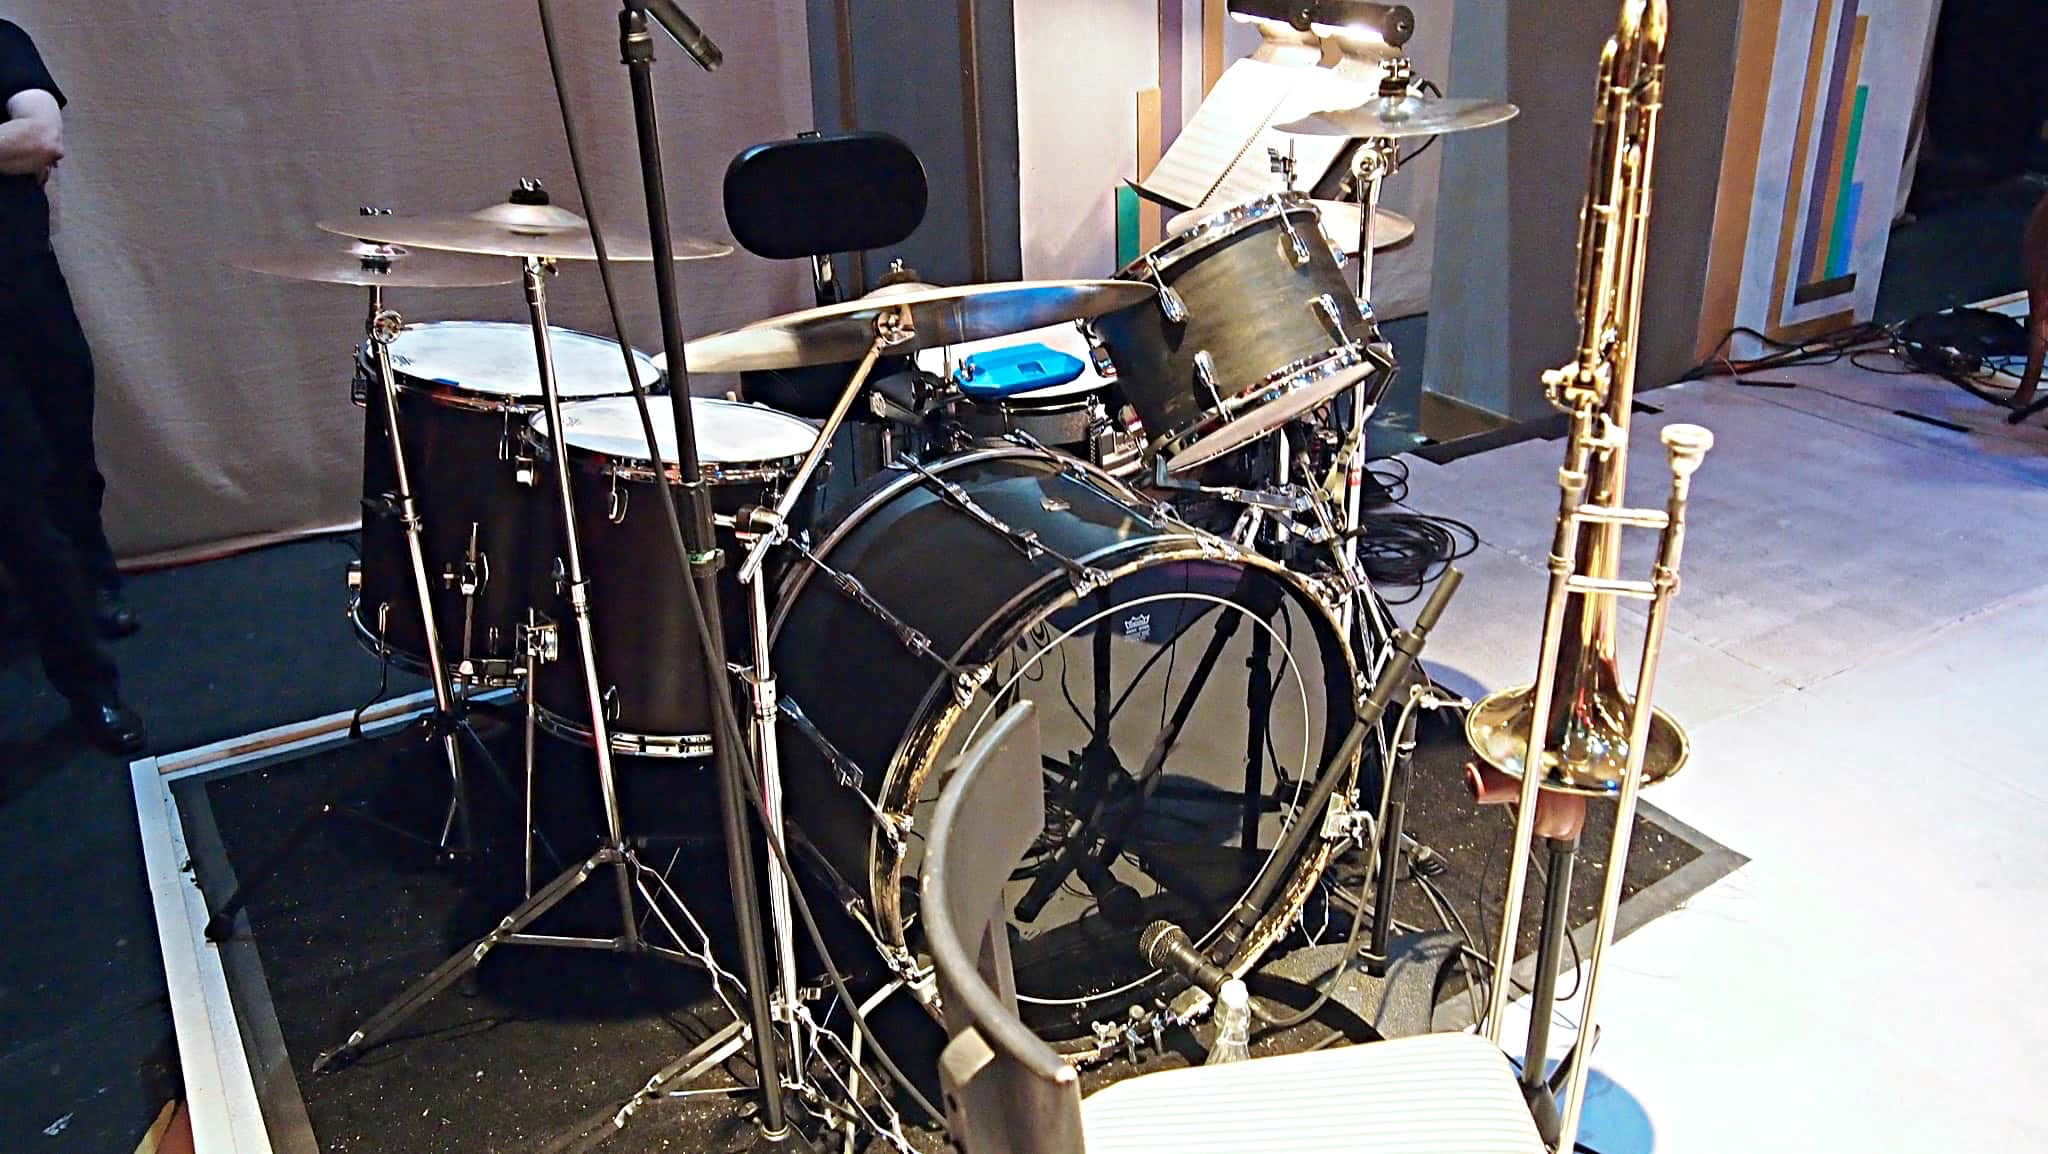 Scot Sexton's drum set setup for the Seattle Musical Theater's production of Ain't Misbehavin' in Seattle, Washington.